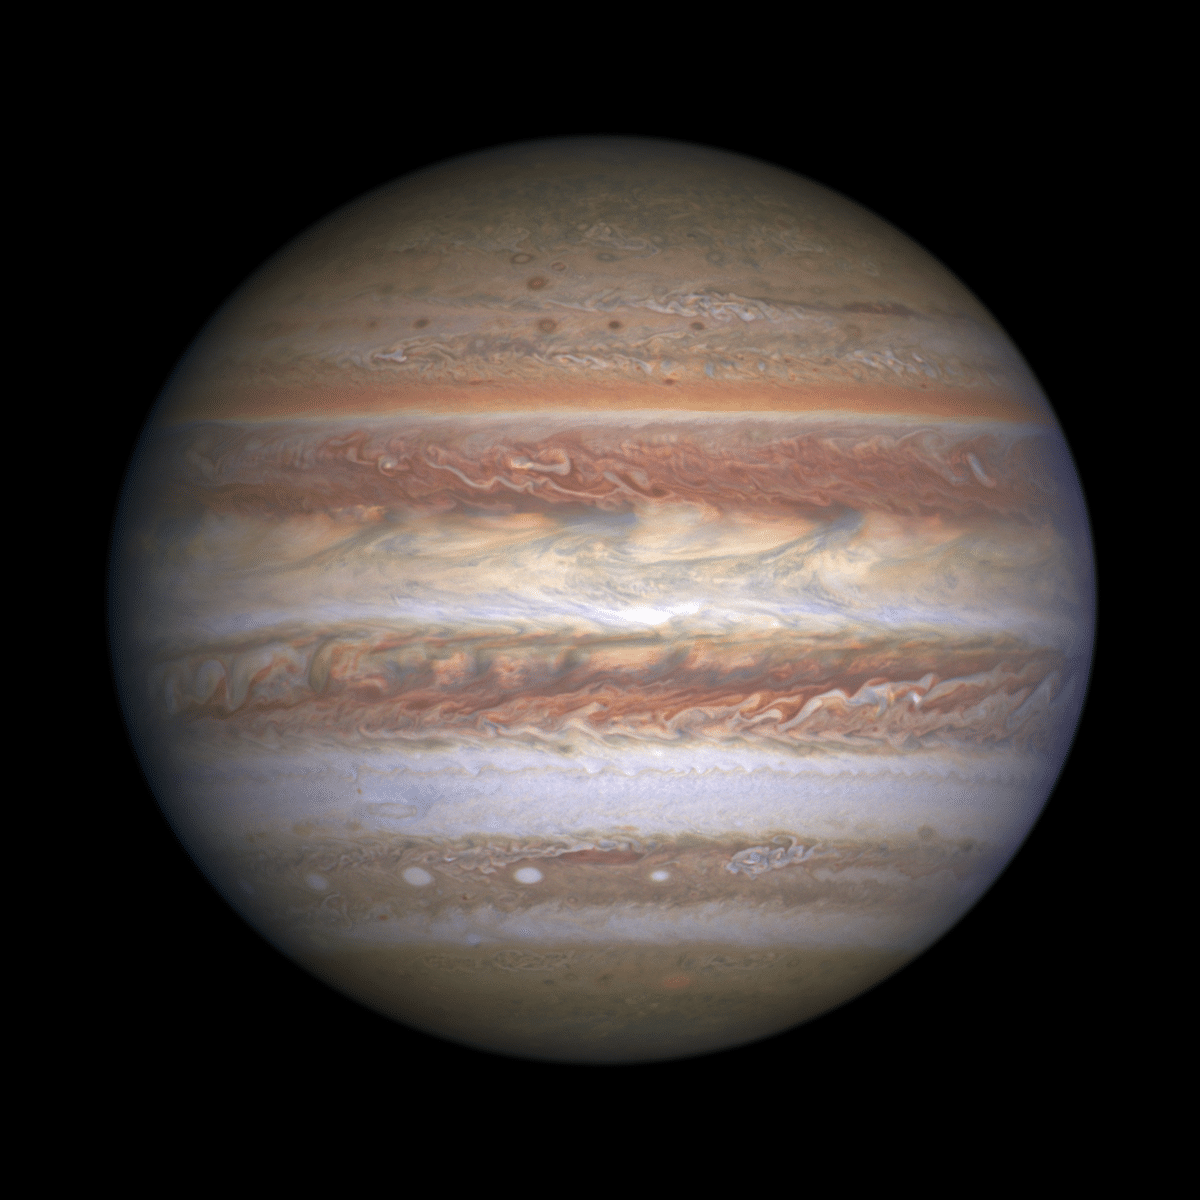 Jupiter as Seen from the Hubble Telescope